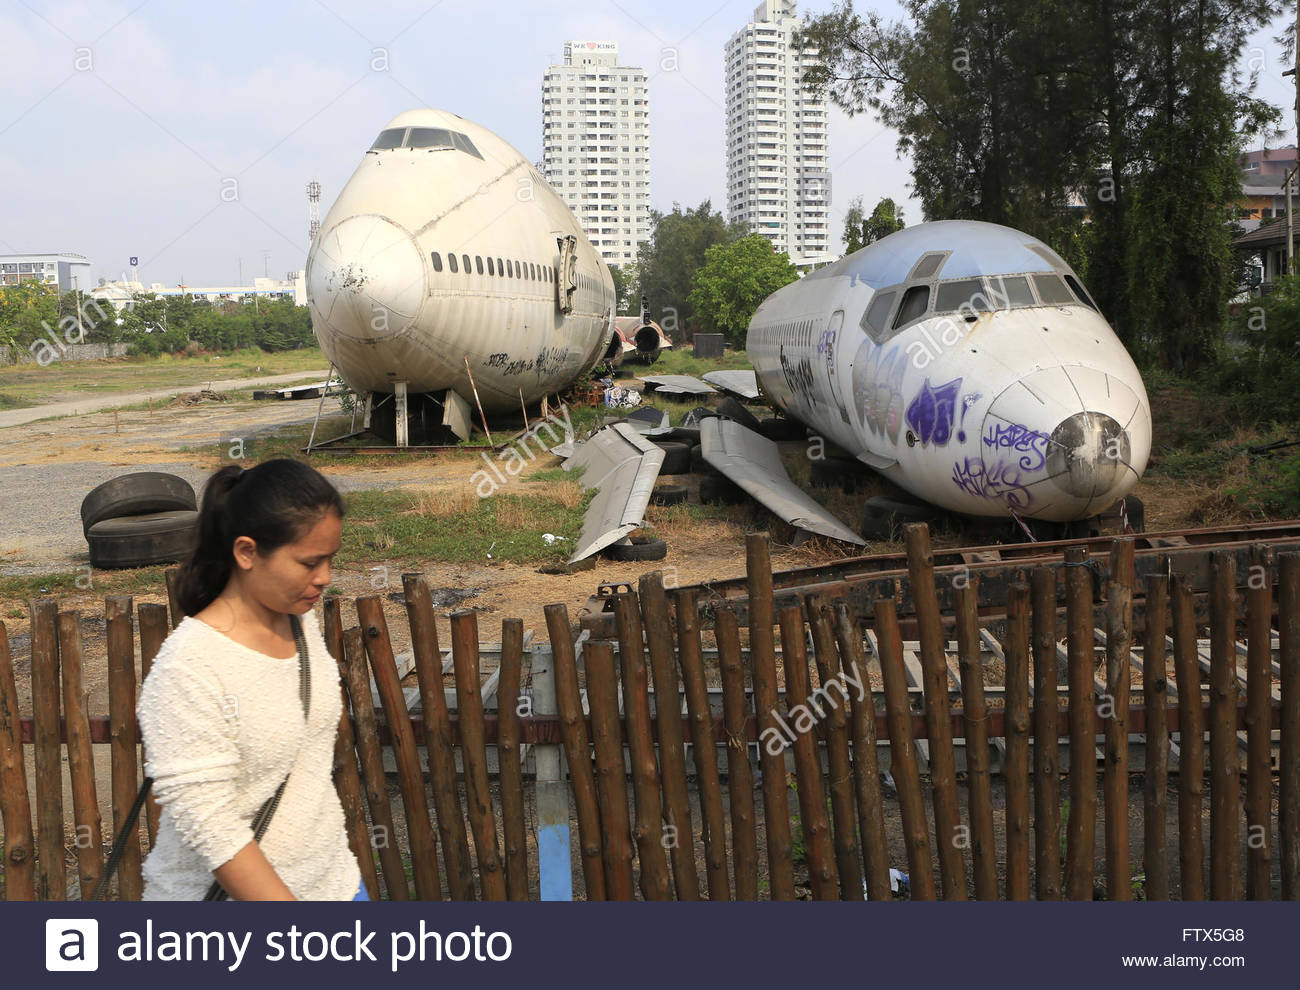 Camouflage And Stencils On The Tail Of Plane L-39m1 Stock Photo ...